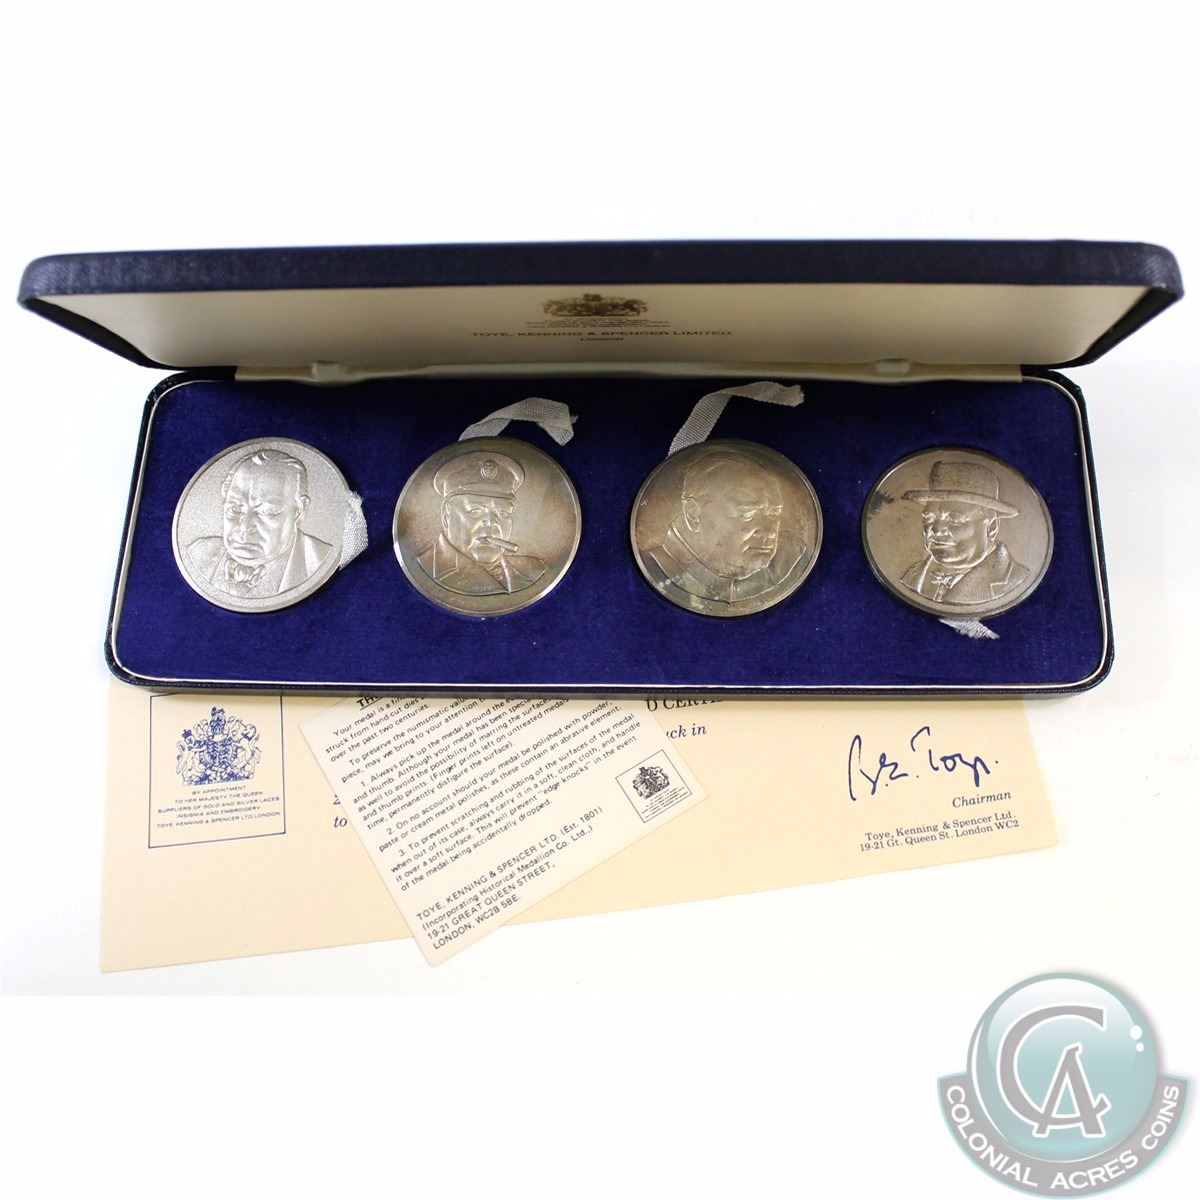 1974 Toye, Kenning & Spencer Limited 4-coin Sterling Silver Churchill  Centenary Commemorative Medall